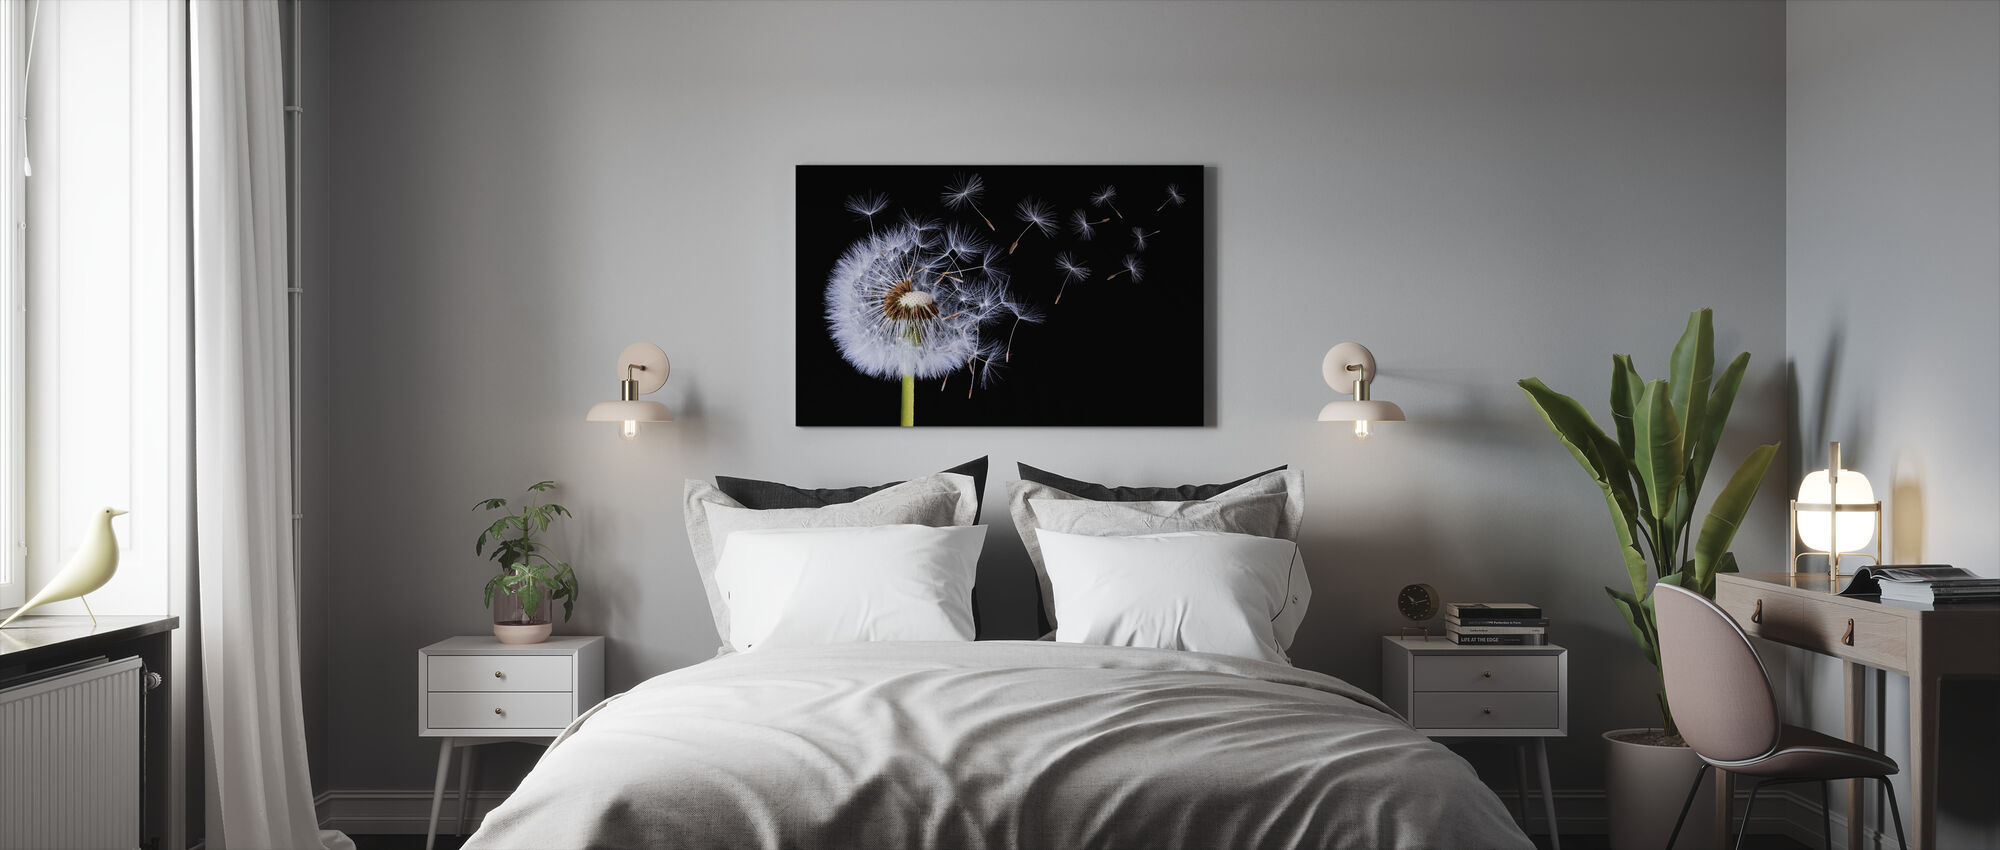 Dandelion Blowing - Canvas print - Bedroom